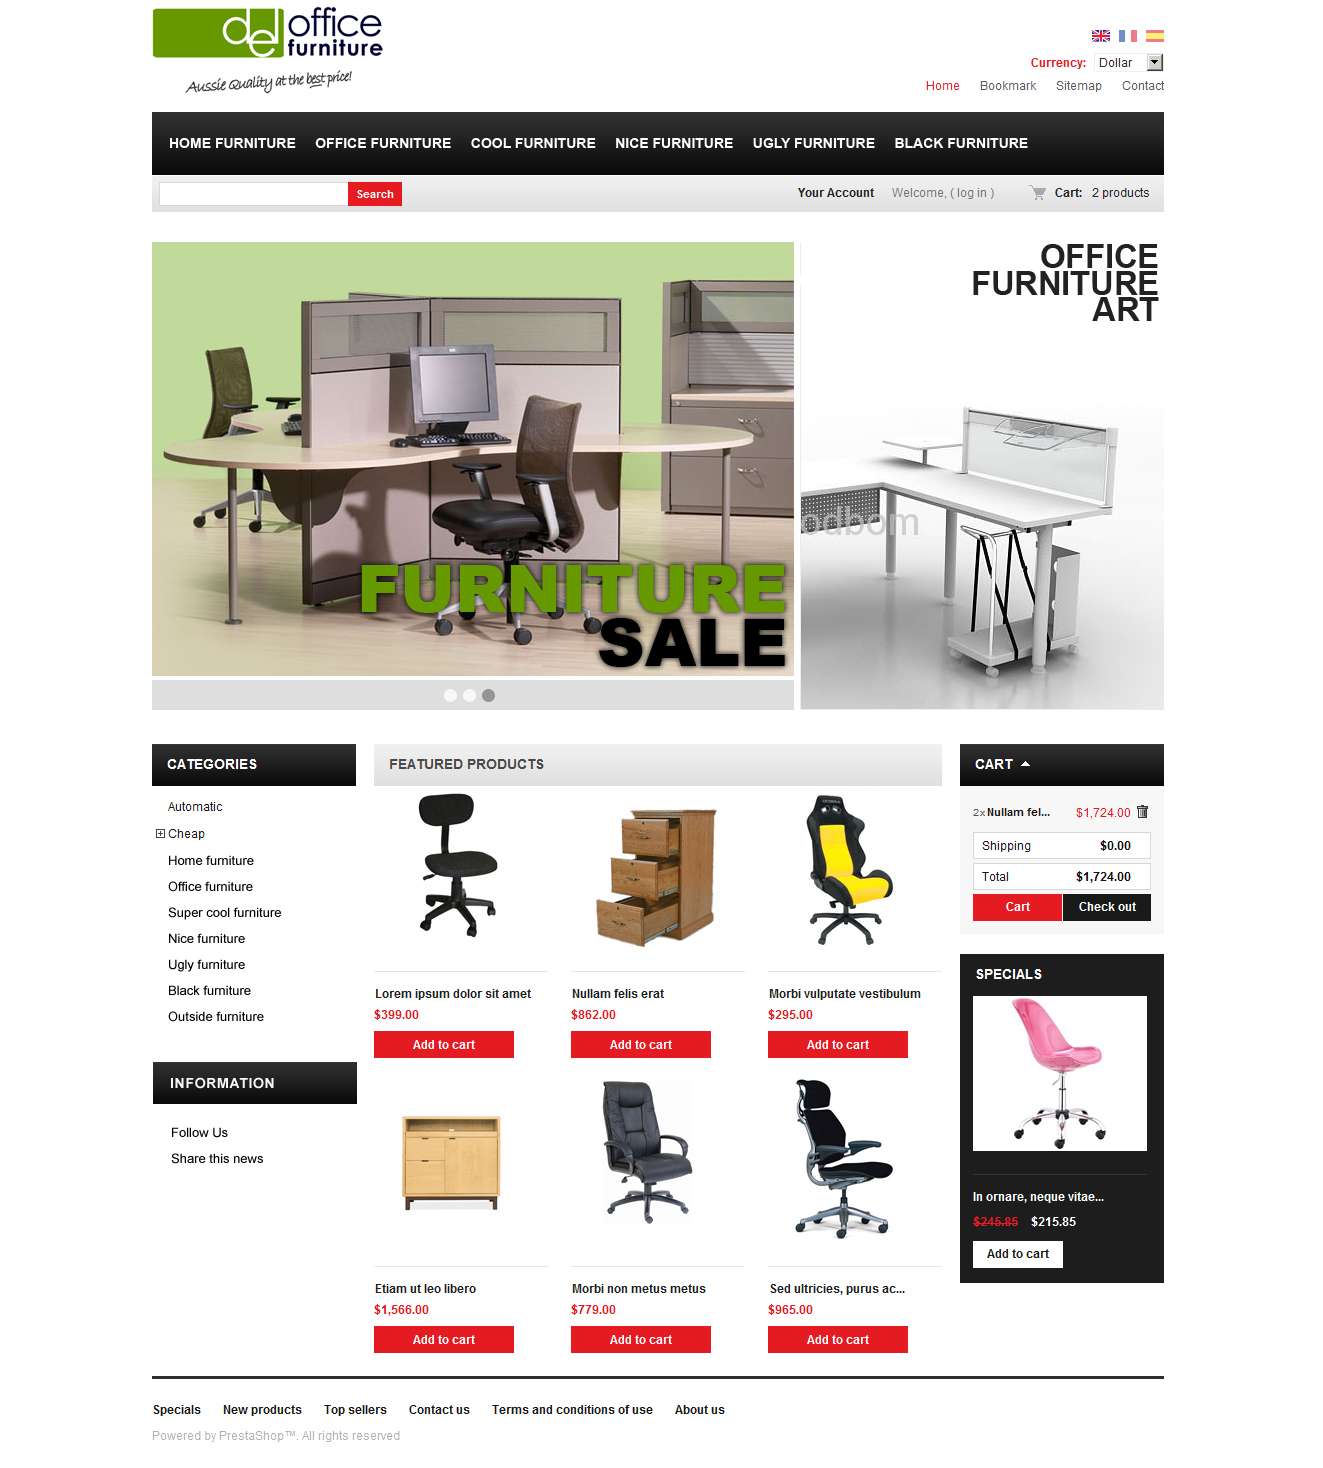 Furniture Web Sites: E-commerce Office Furniture Website Design Melbourne